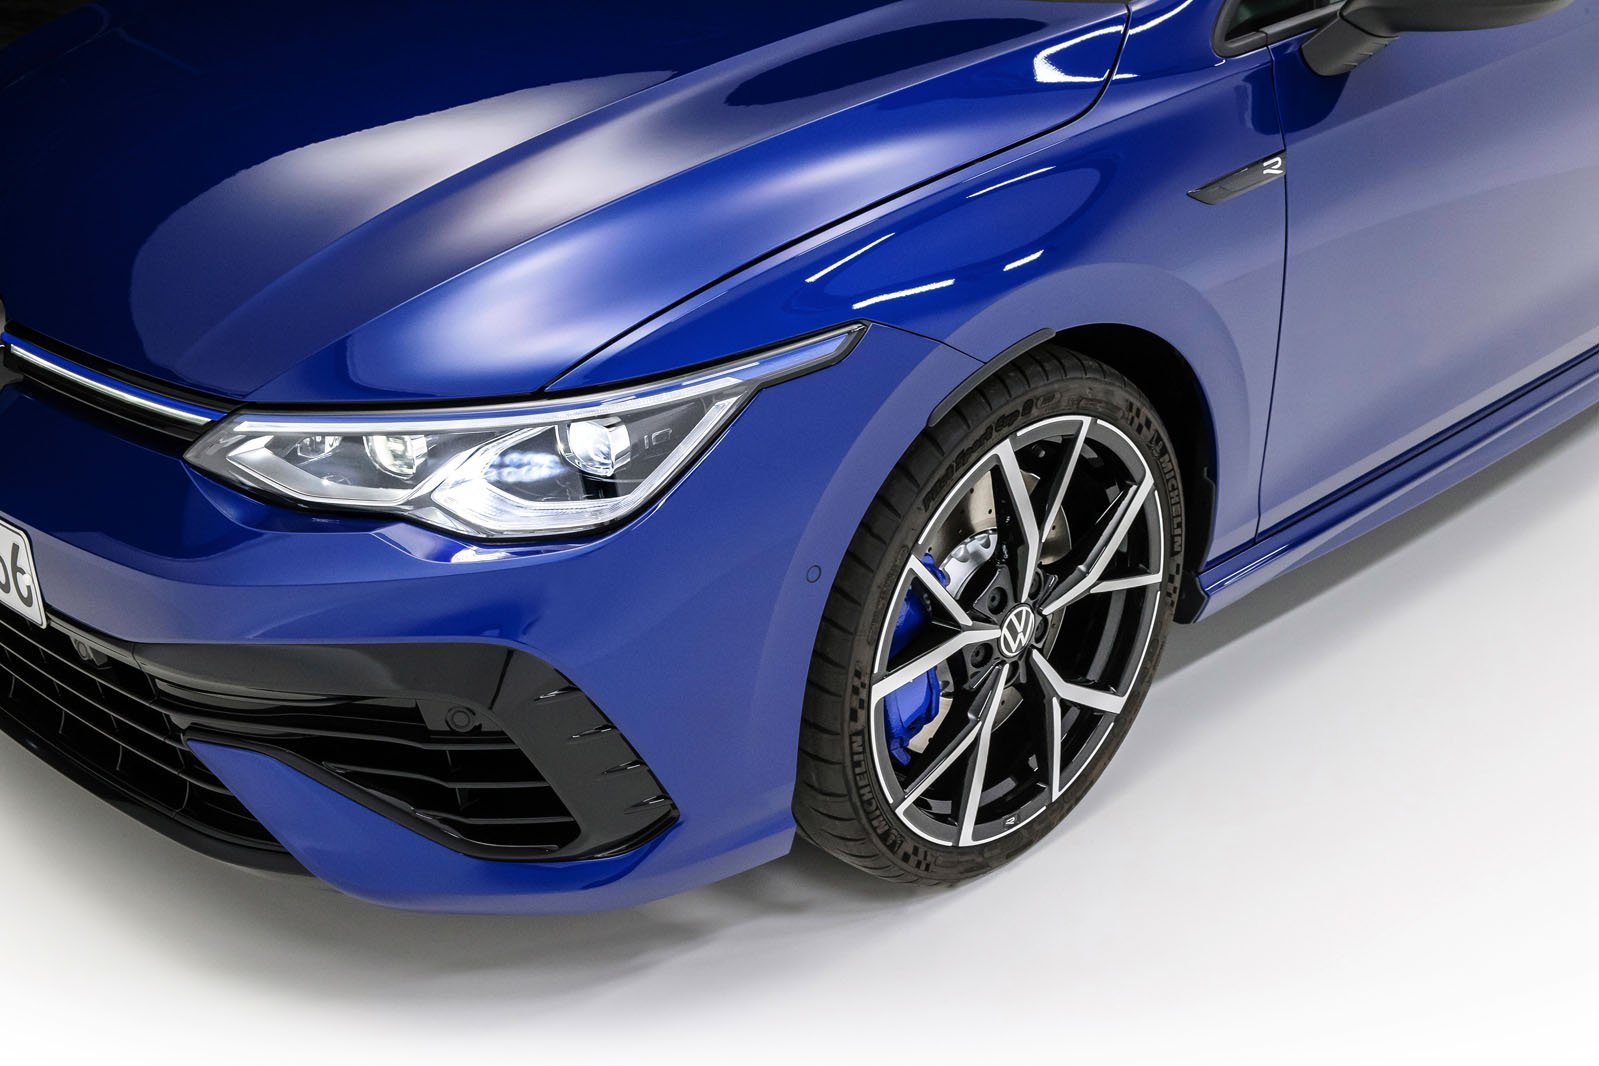 2021 Volkswagen Golf R alloy wheels